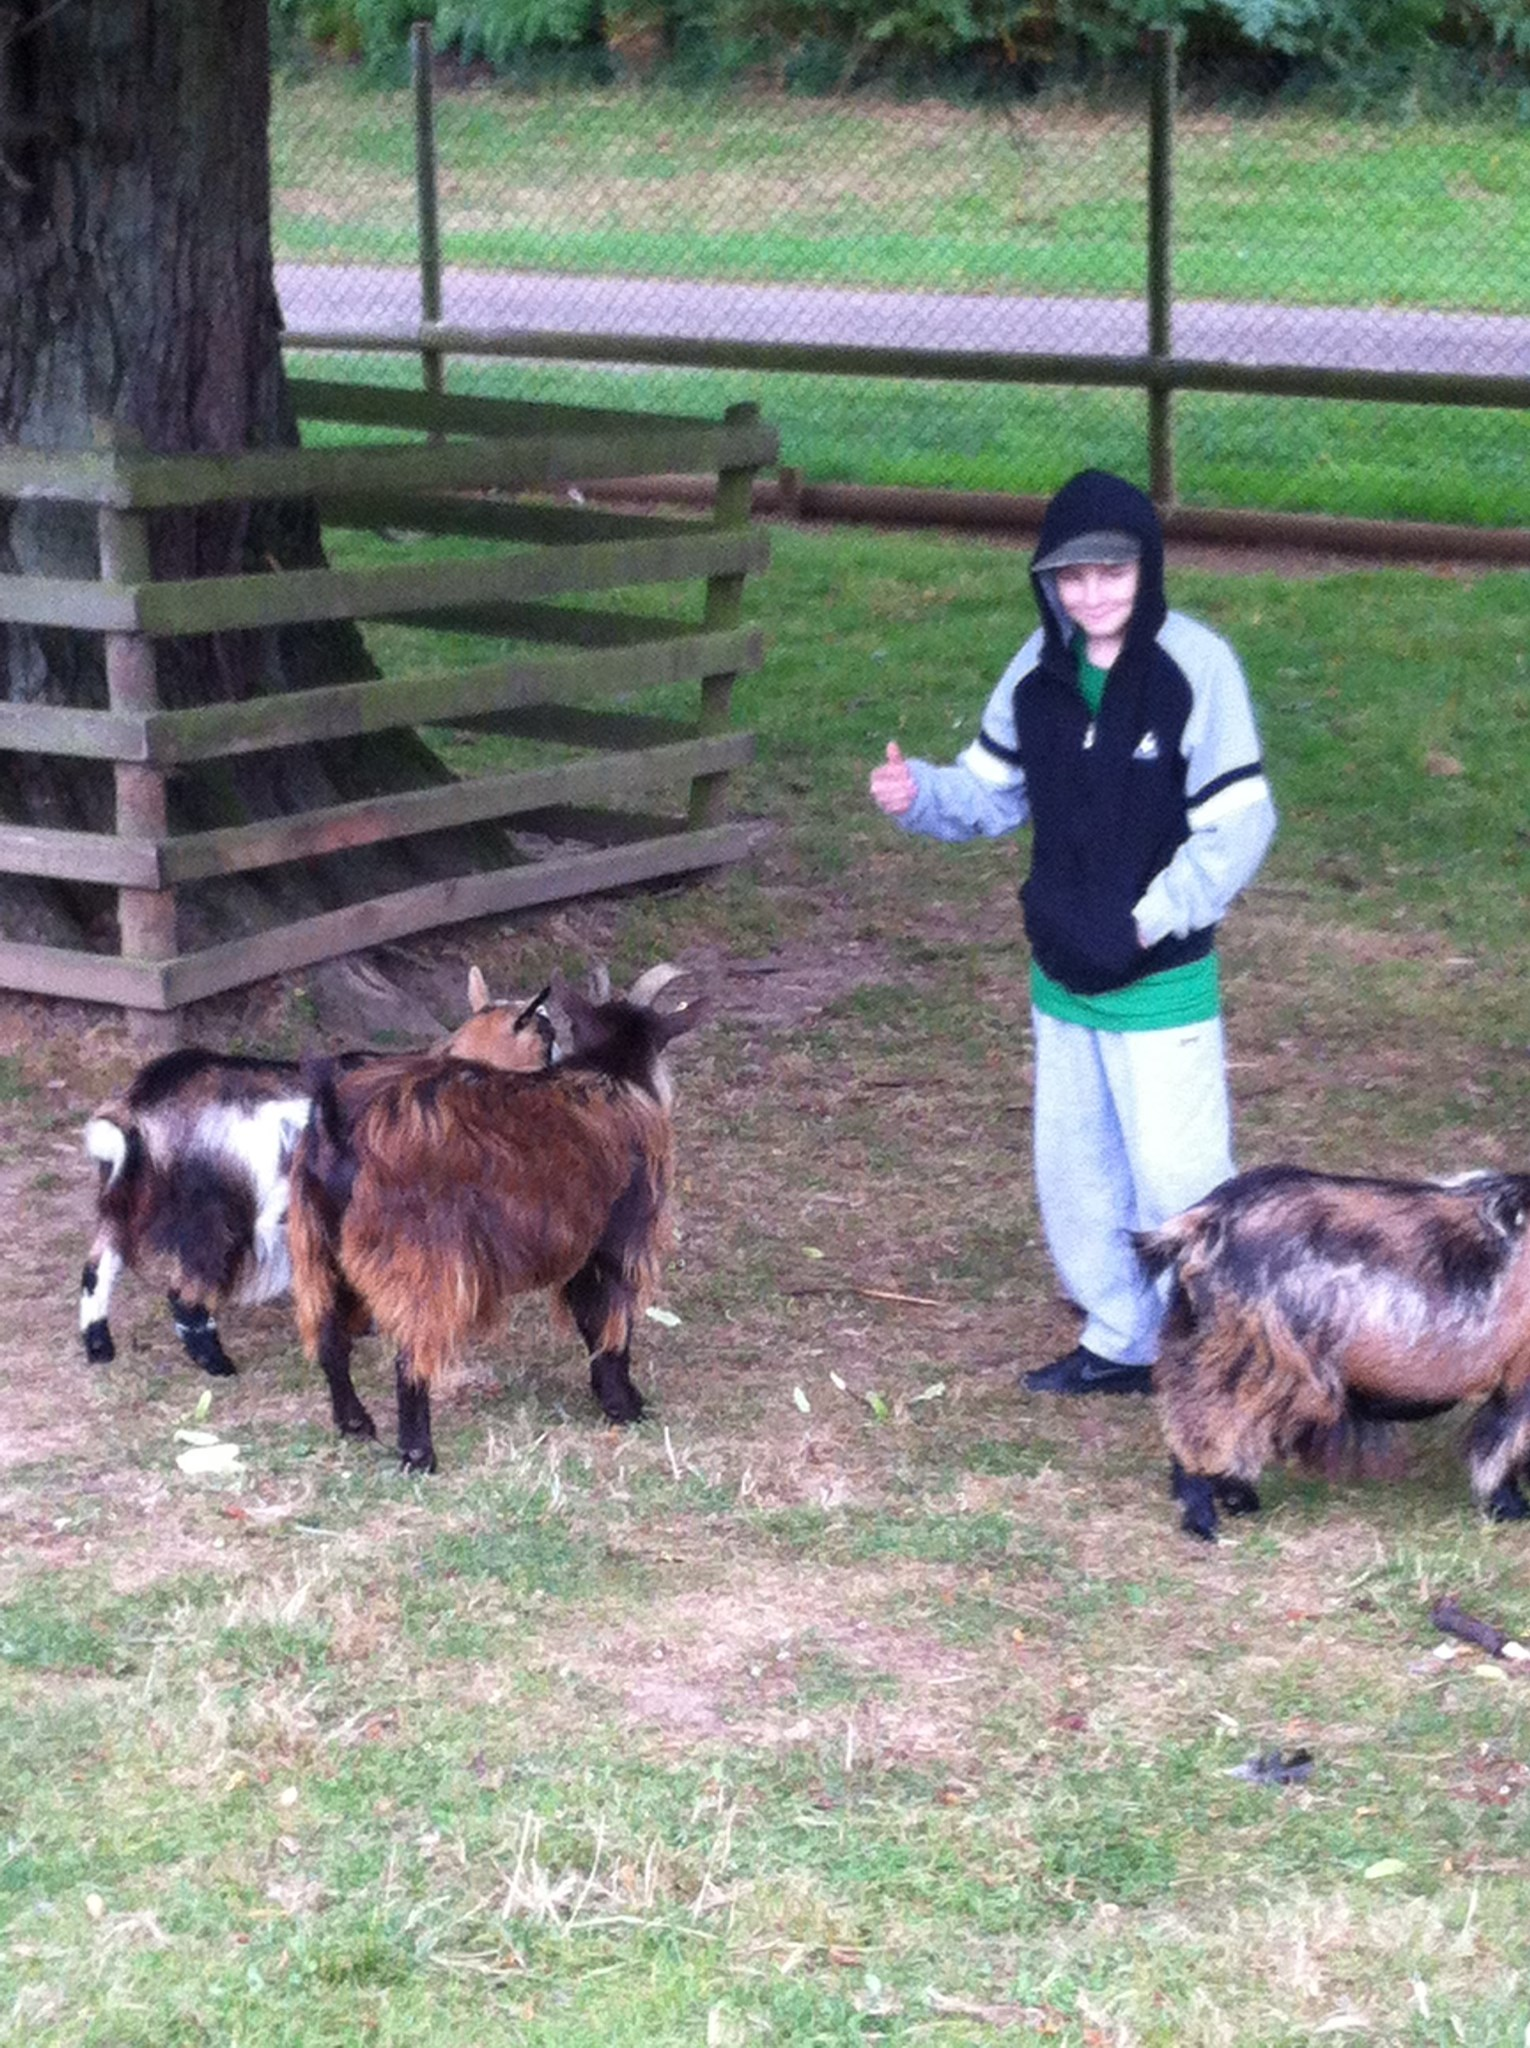 Ryan and the goats